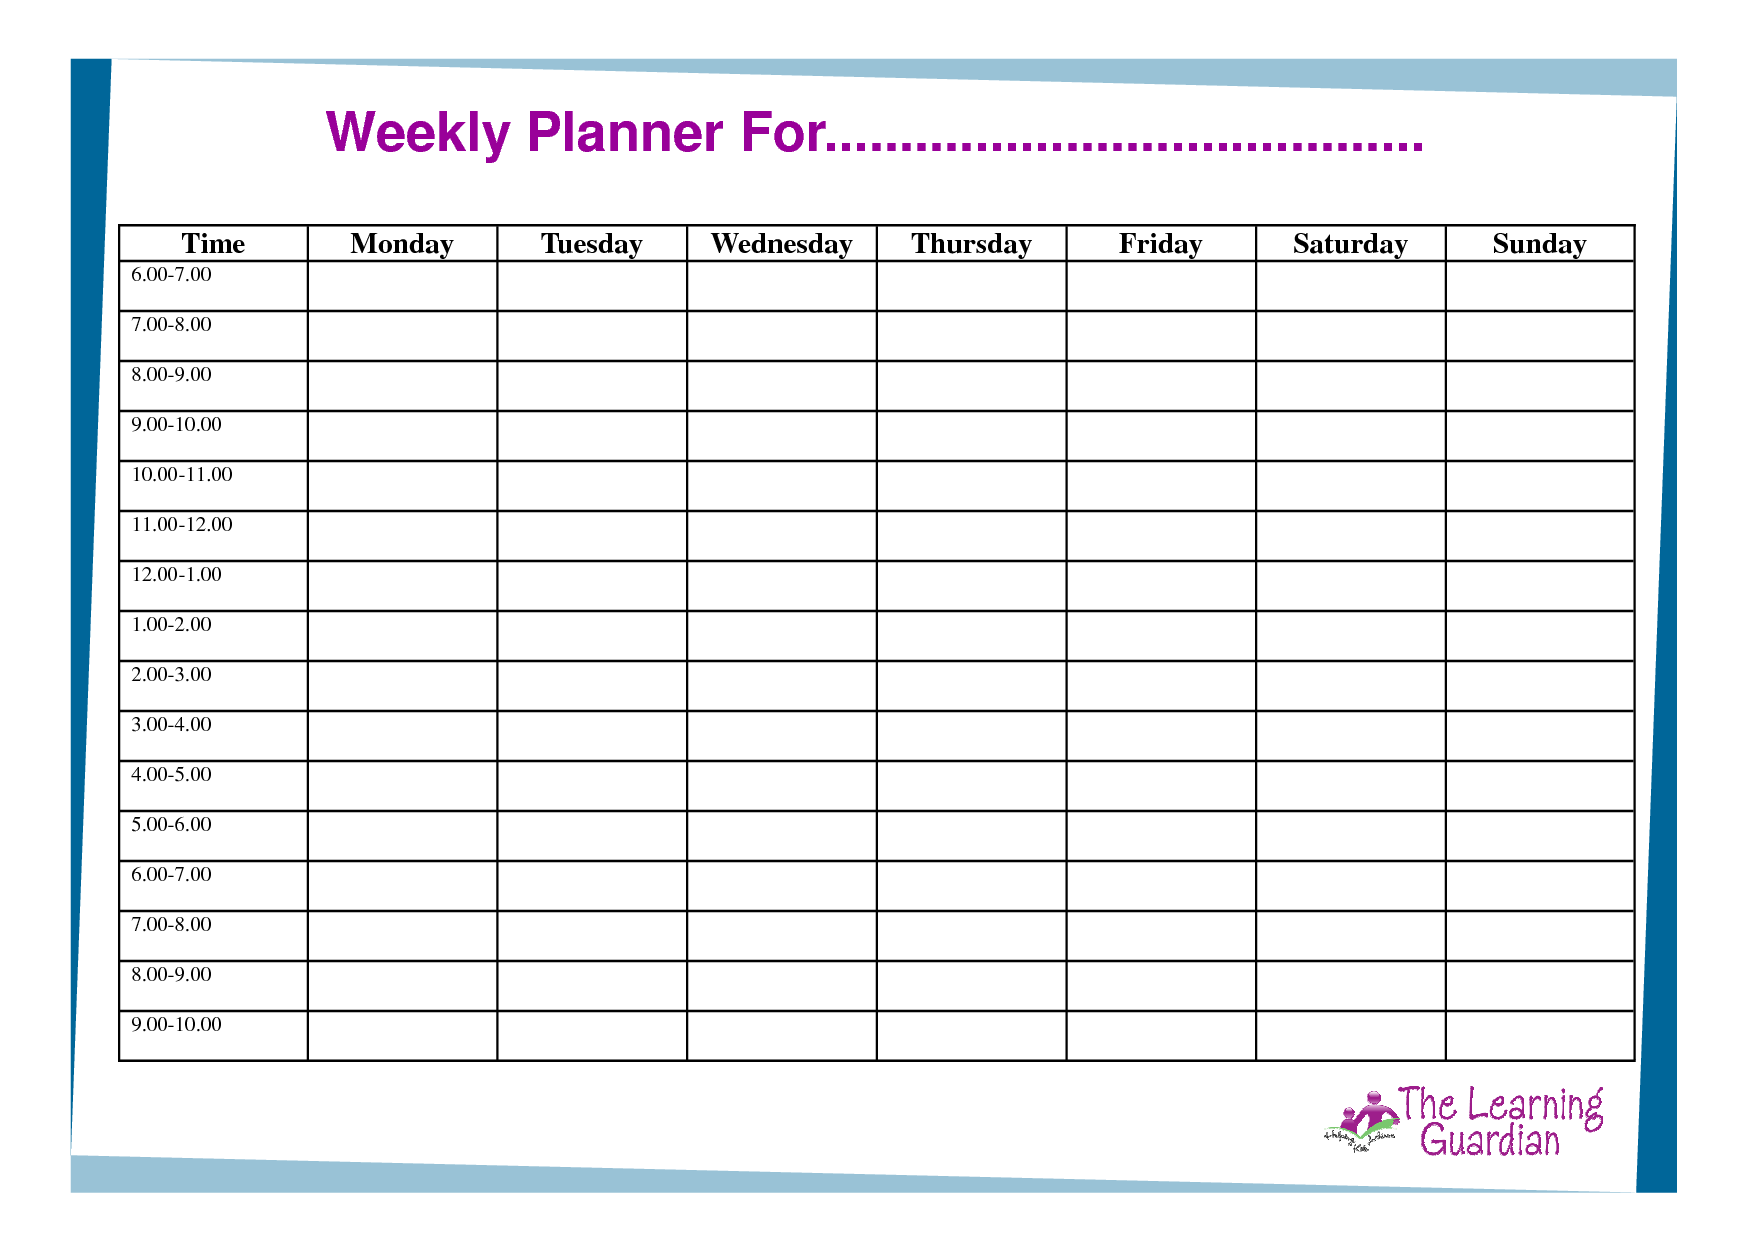 Free Printable Weekly Calendar Templates | Weekly Planner For Time ...